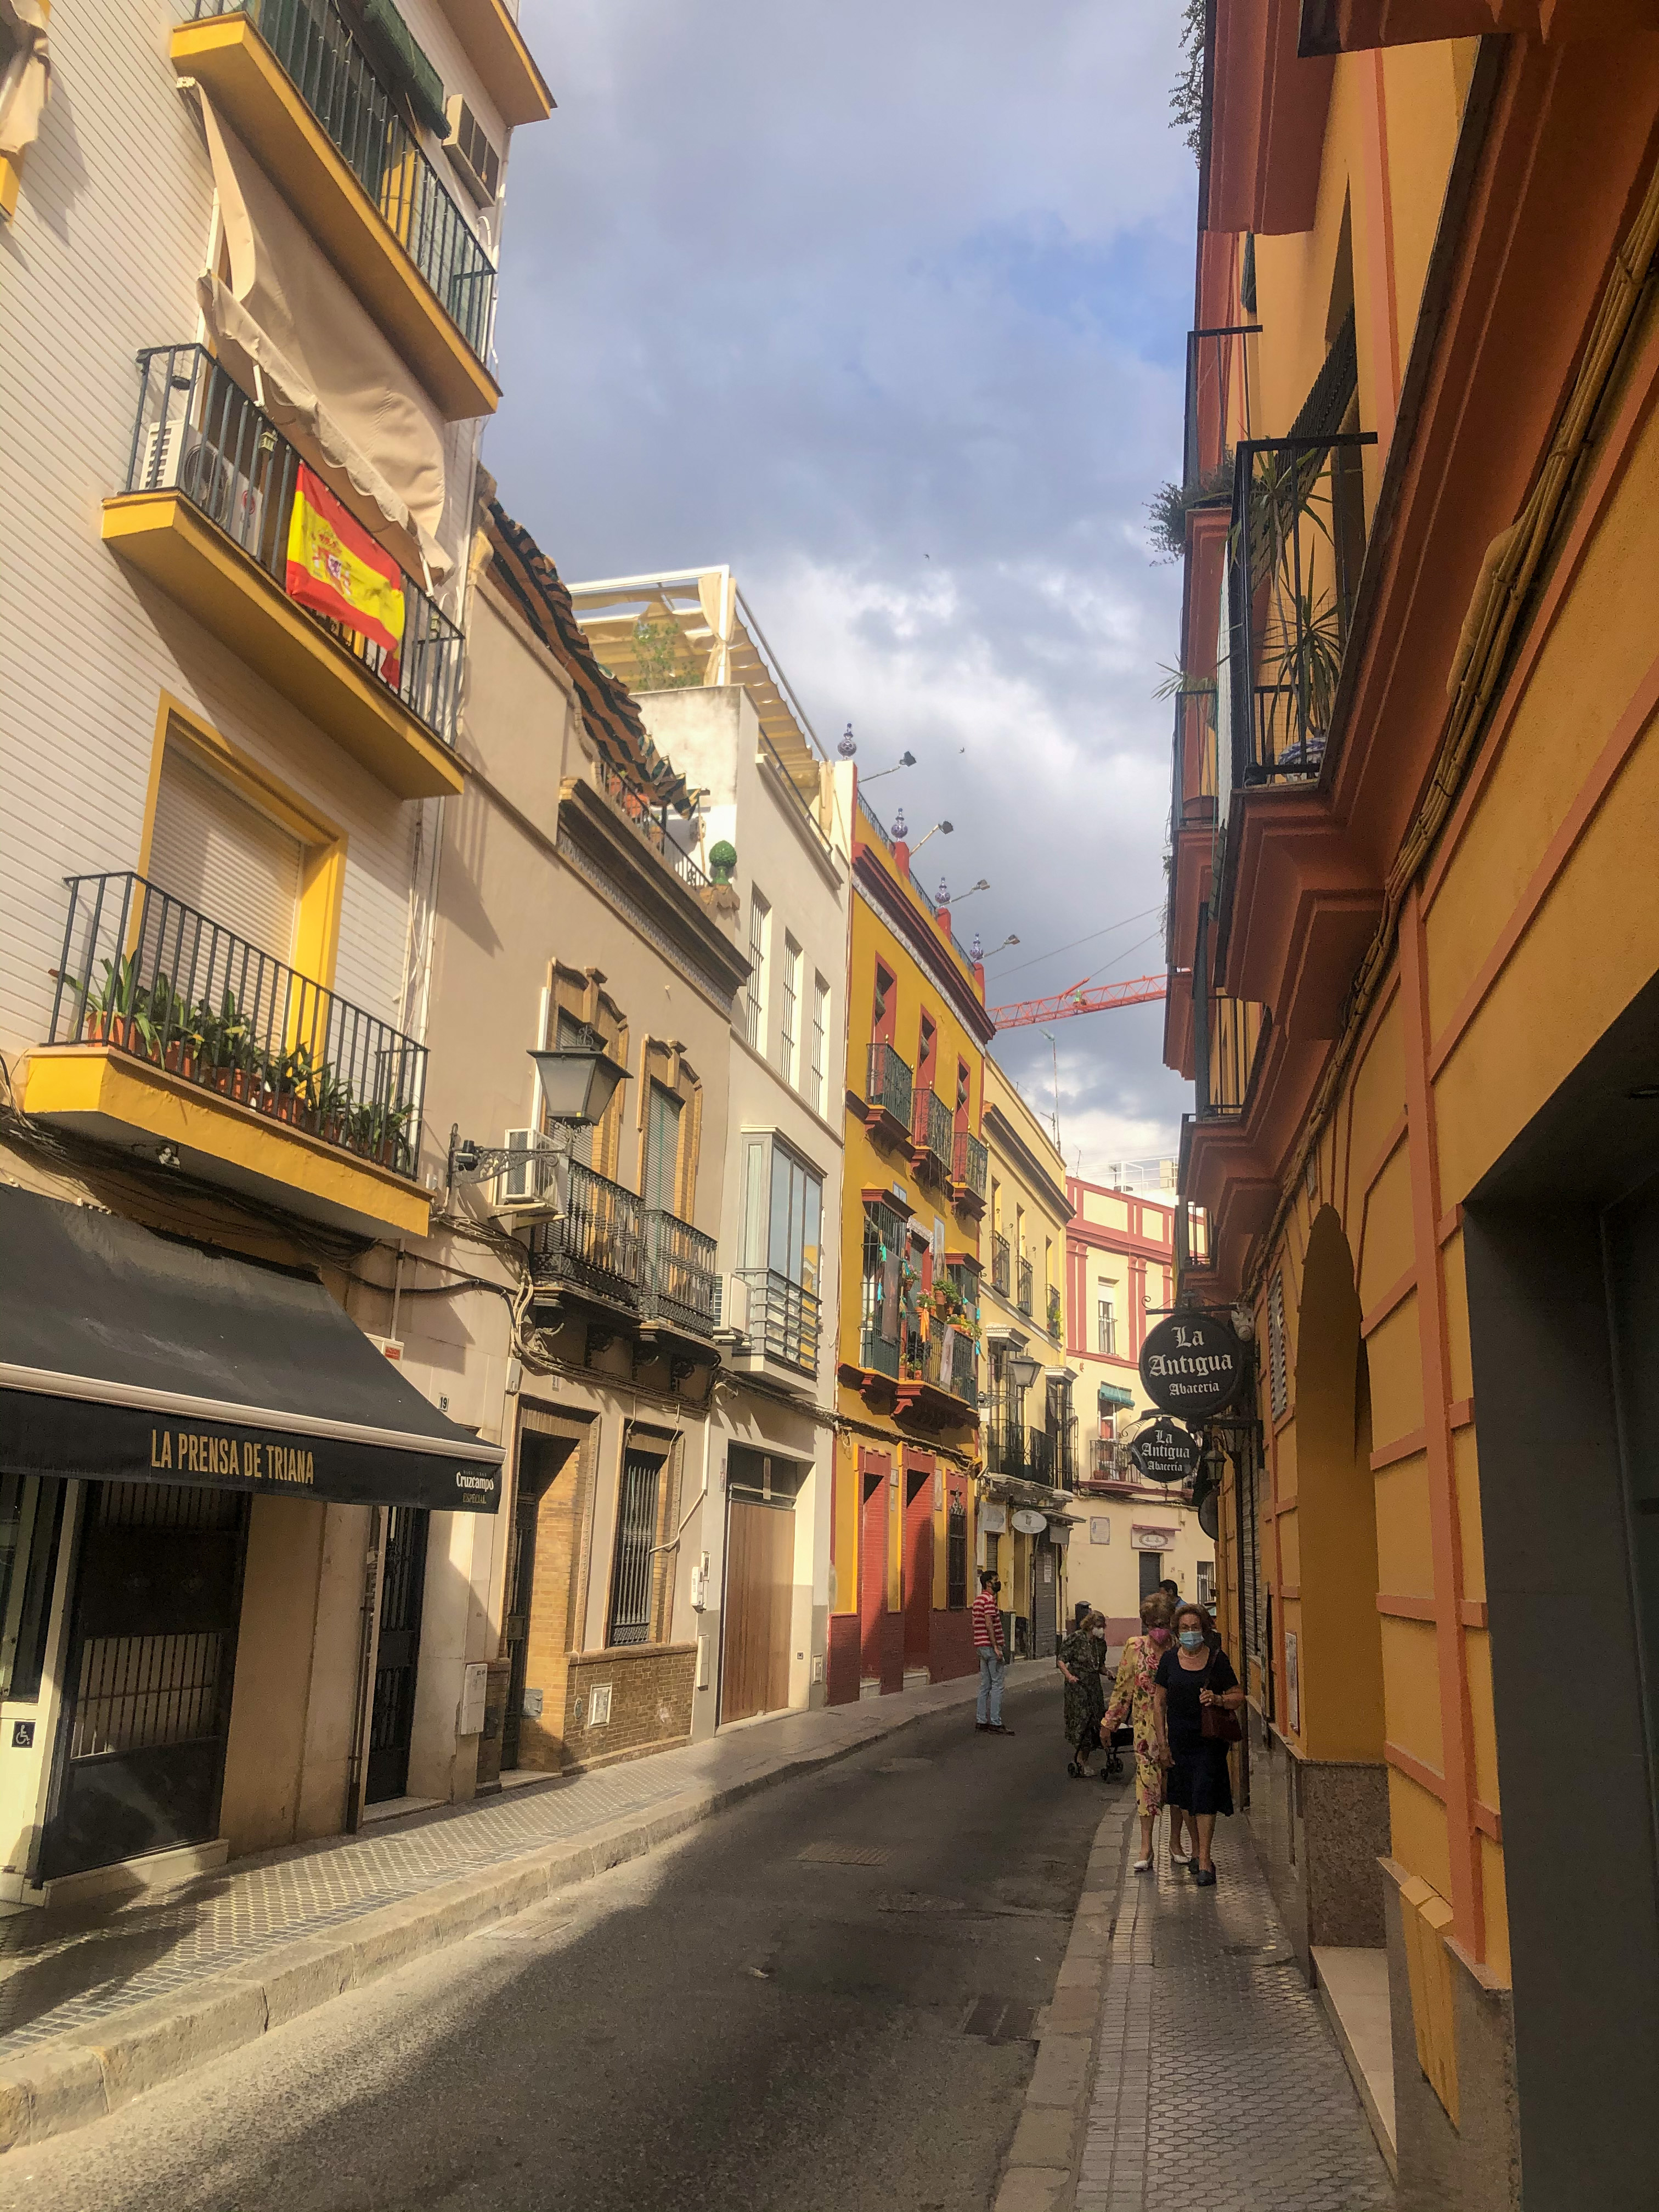 Picture of a residential street in Sevilla